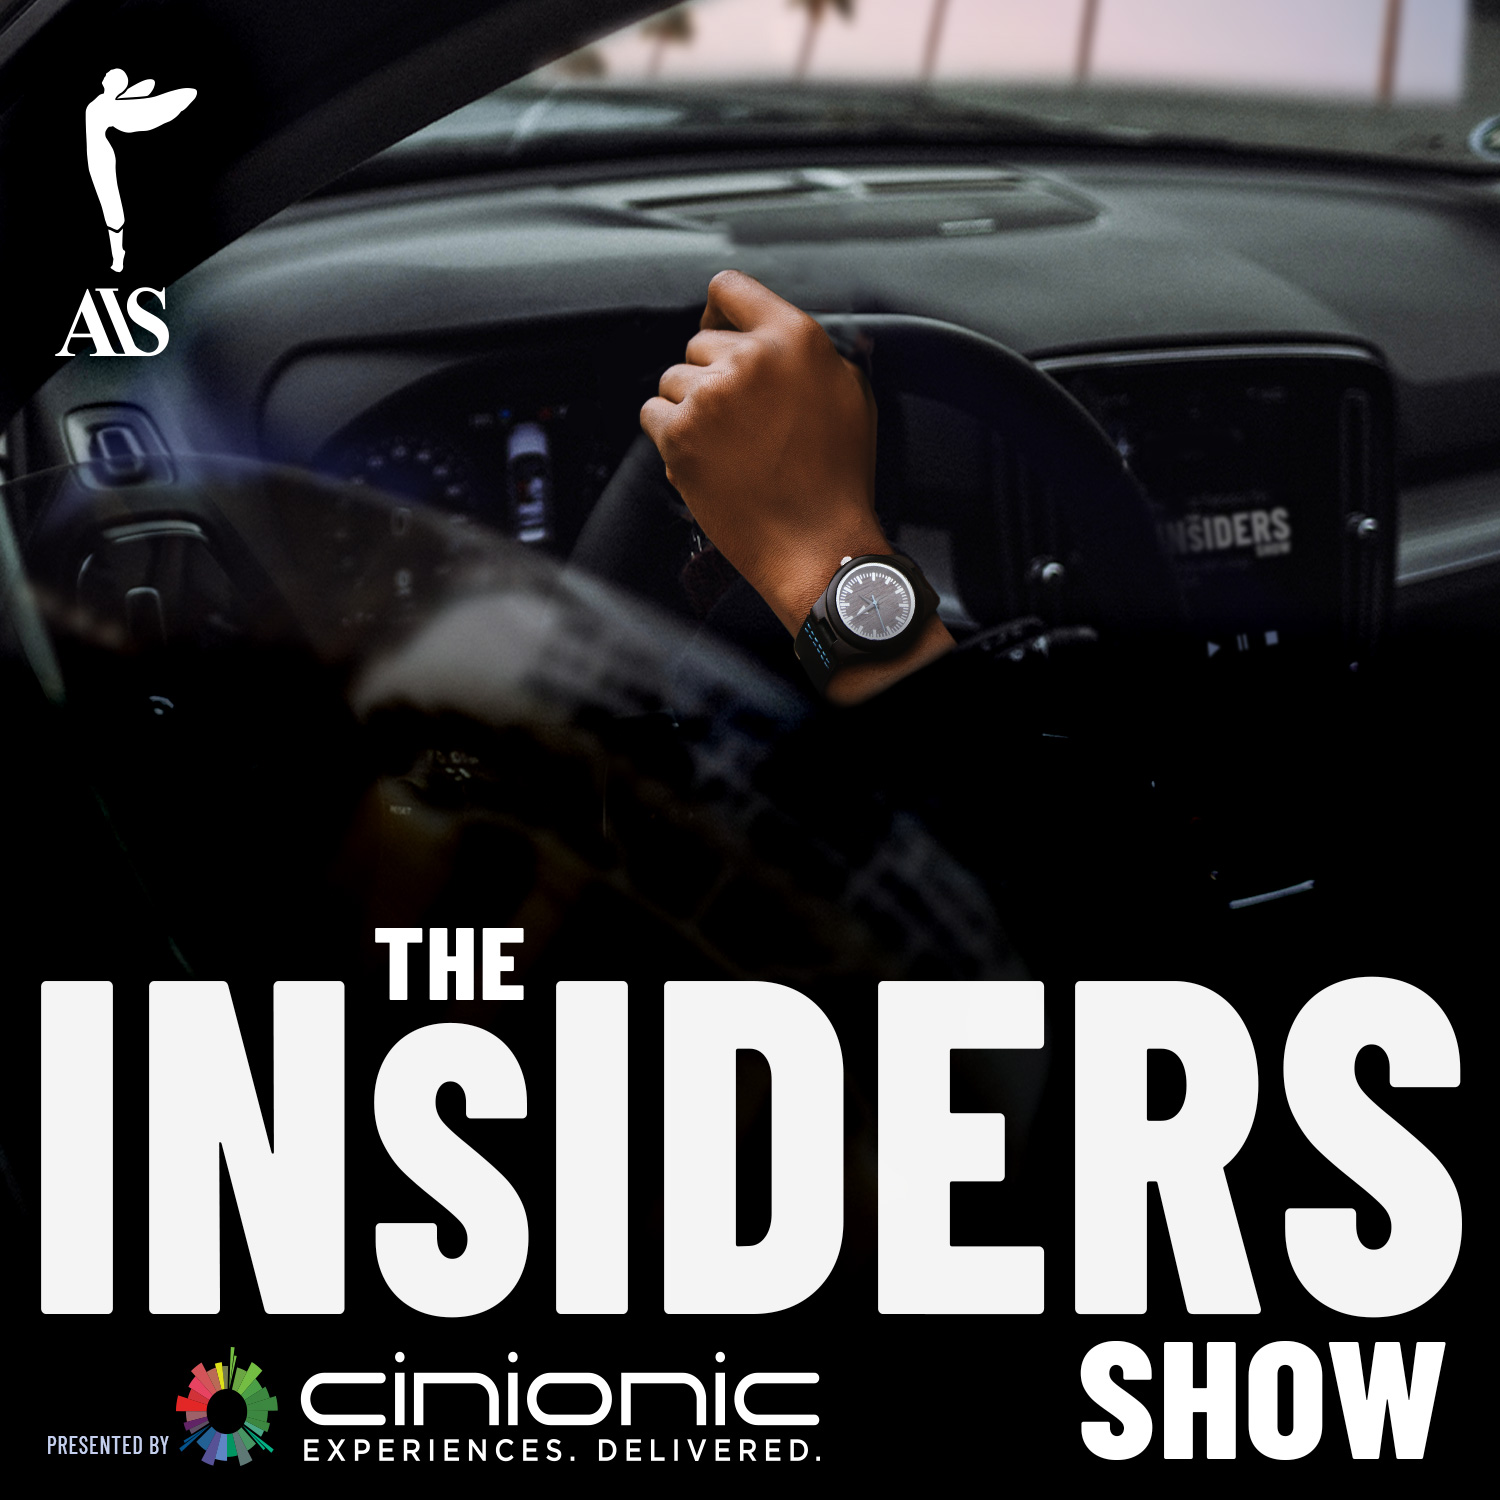 Artwork for podcast The Insiders Show